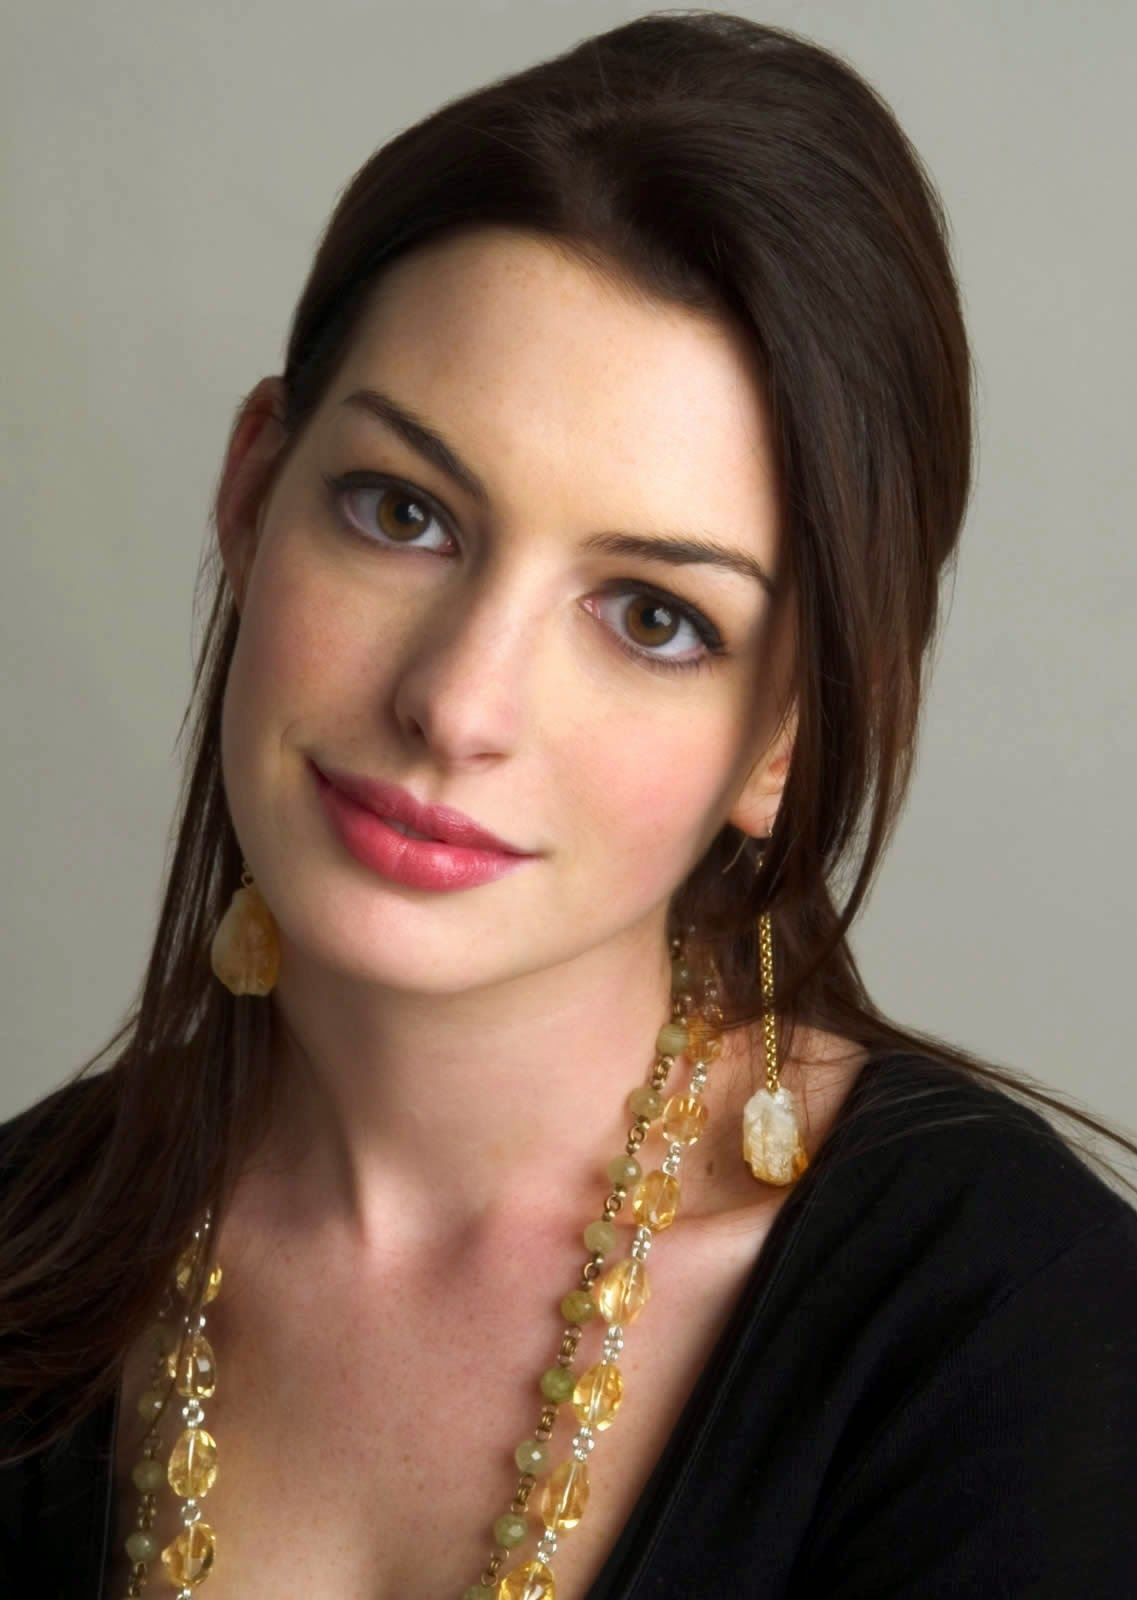 HOLLYWOOD ACTRESS: Anne Hathaway Hot American Actress Penelopecruz